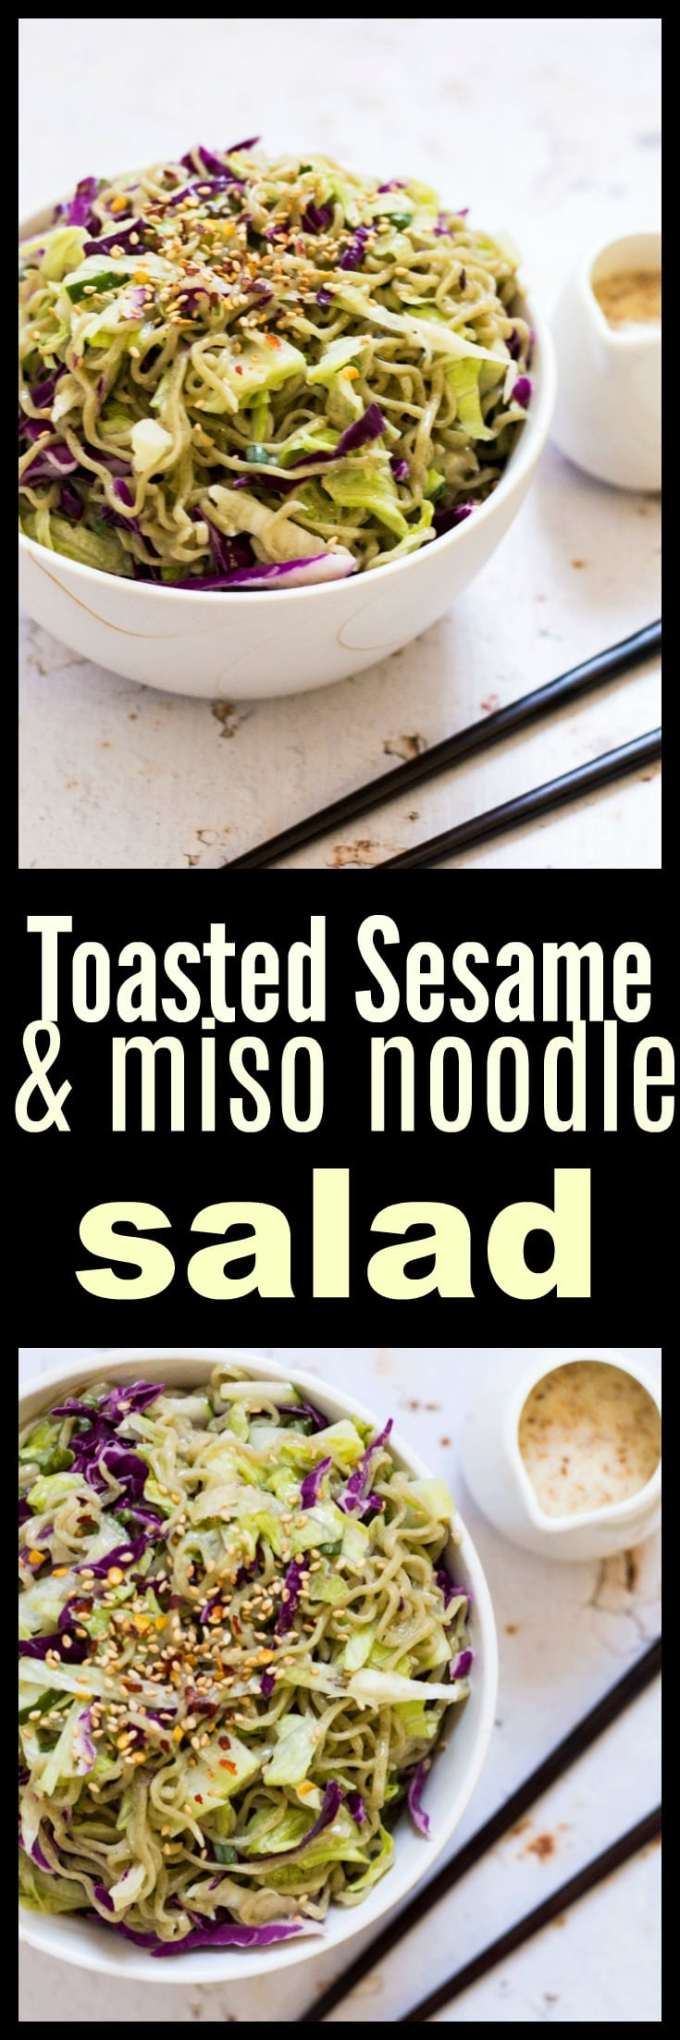 Enjoy a light and veggie filled meal with this Toasted Sesame and Miso Noodle Salad. Quick and easy to put together and jam packed goodness.